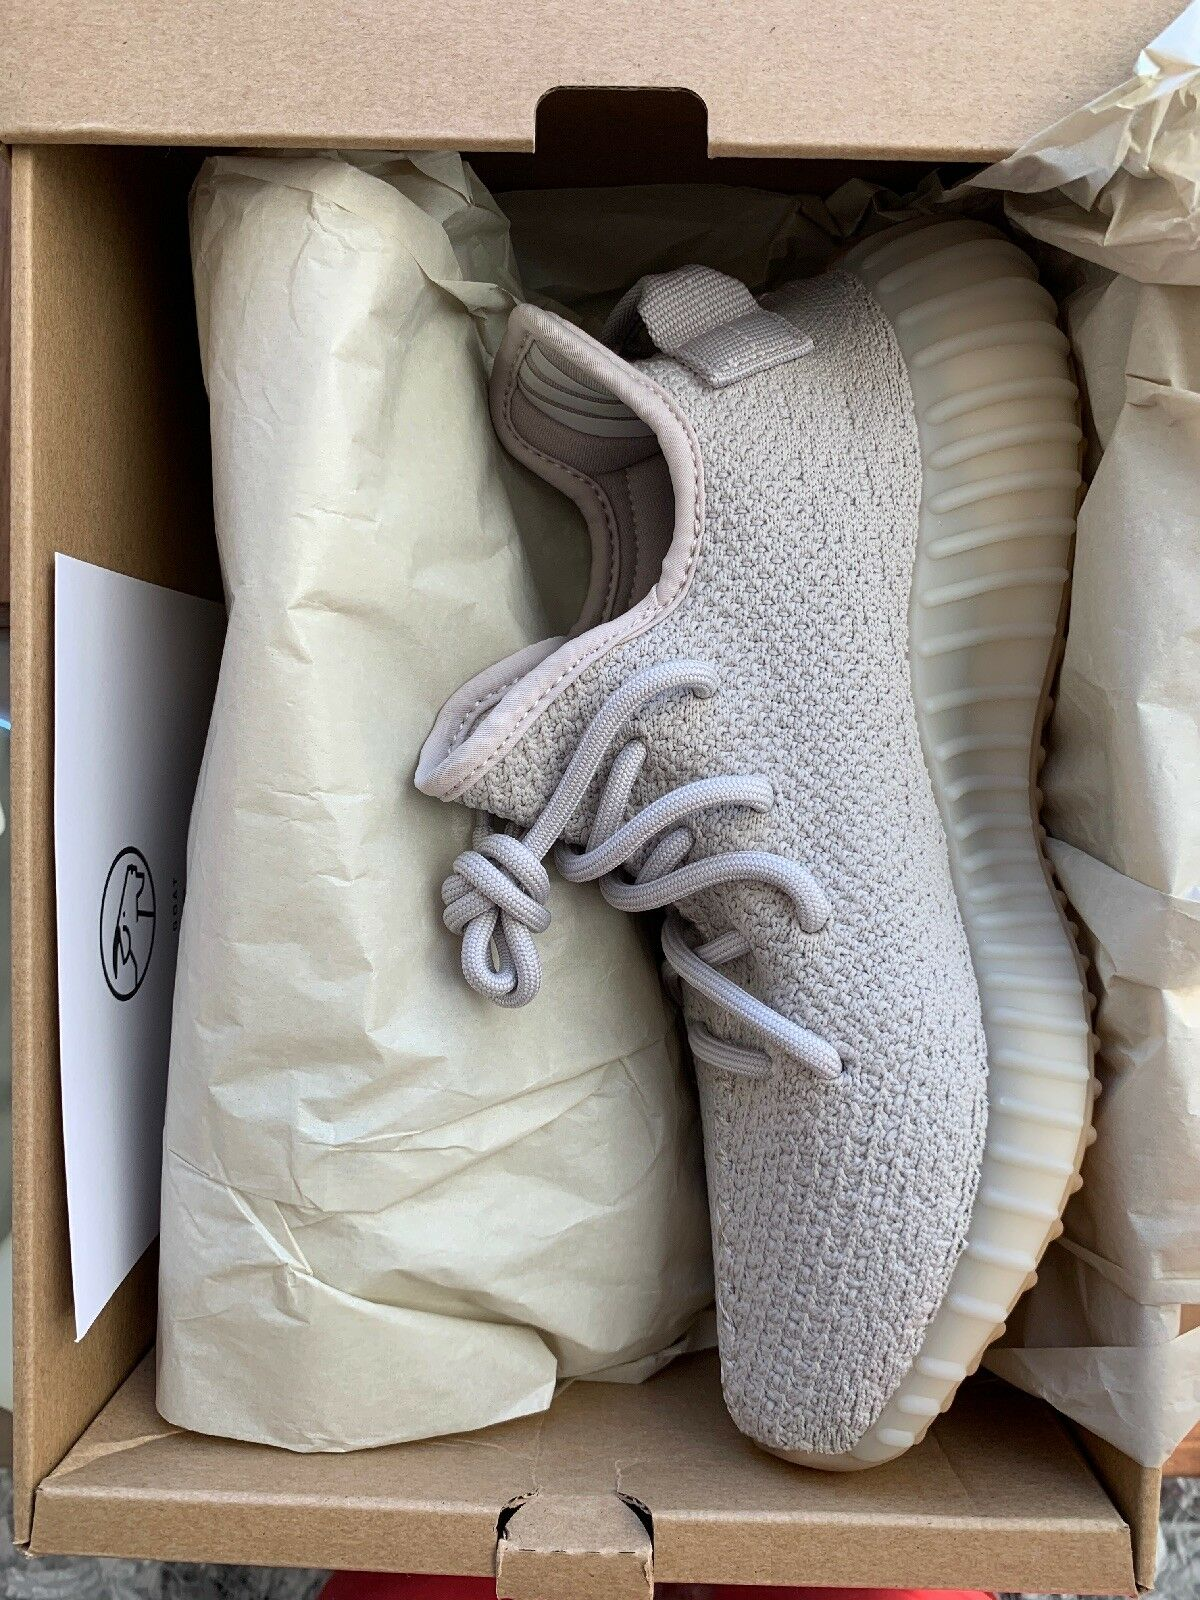 New 100% AUTHENTIC Adidas Yeezy Boost 350 v2 Sesame Size 5 1 2 5.5